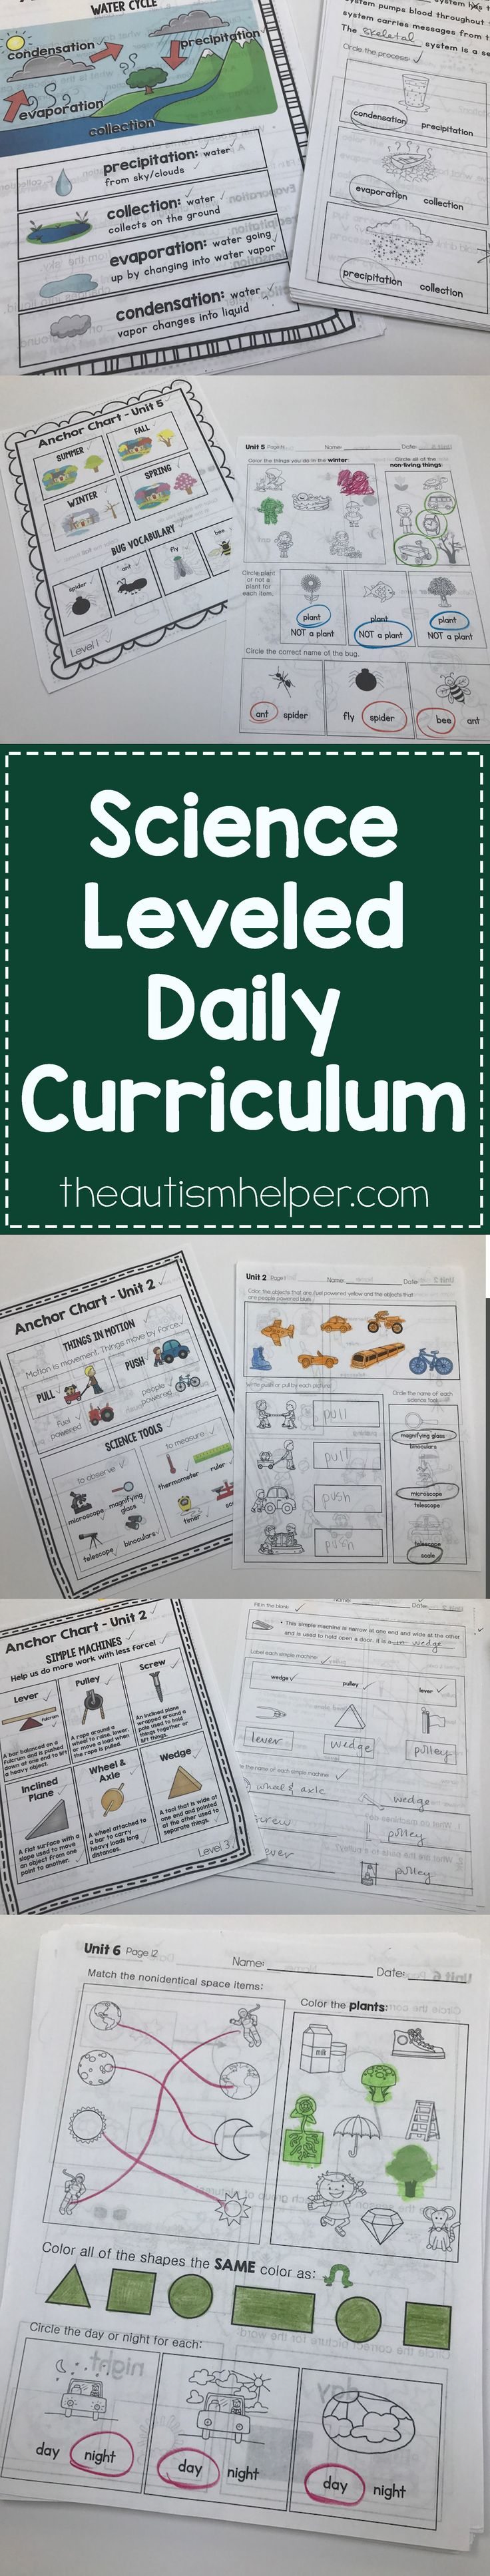 Love the structure, organization & peace of mind of having your entire curriculum planned & ready to roll?! Well I'm happy to announce that my Science Leveled Daily Curriculum is here! I want to show you everything that's included, so head to the blog for product video tours & more!! From theautismhelper.com #theautismhelper